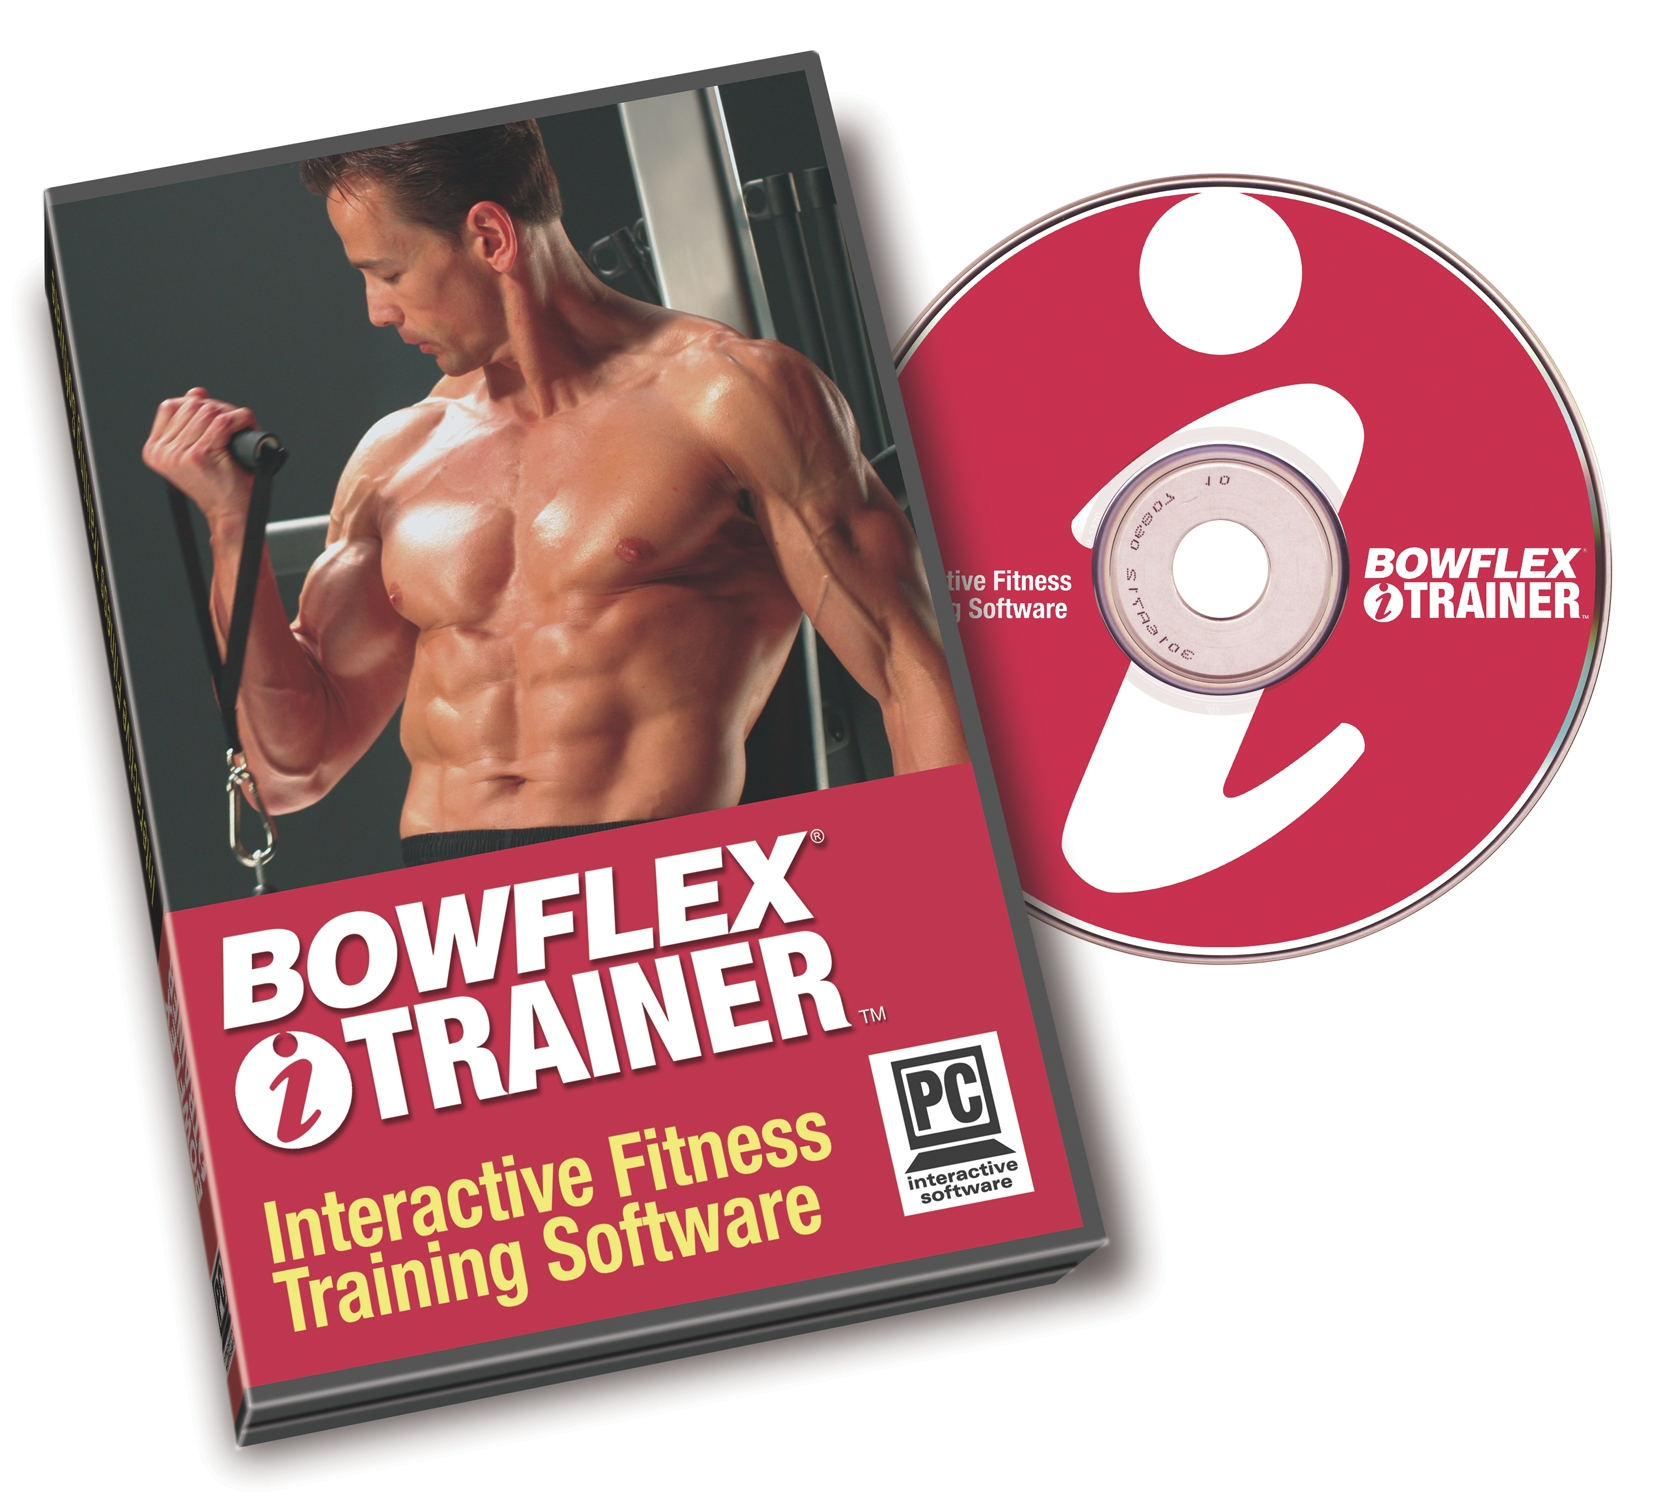 Bowflex Revolution Space Requirements: Bowflex I-trainer Fitness Software